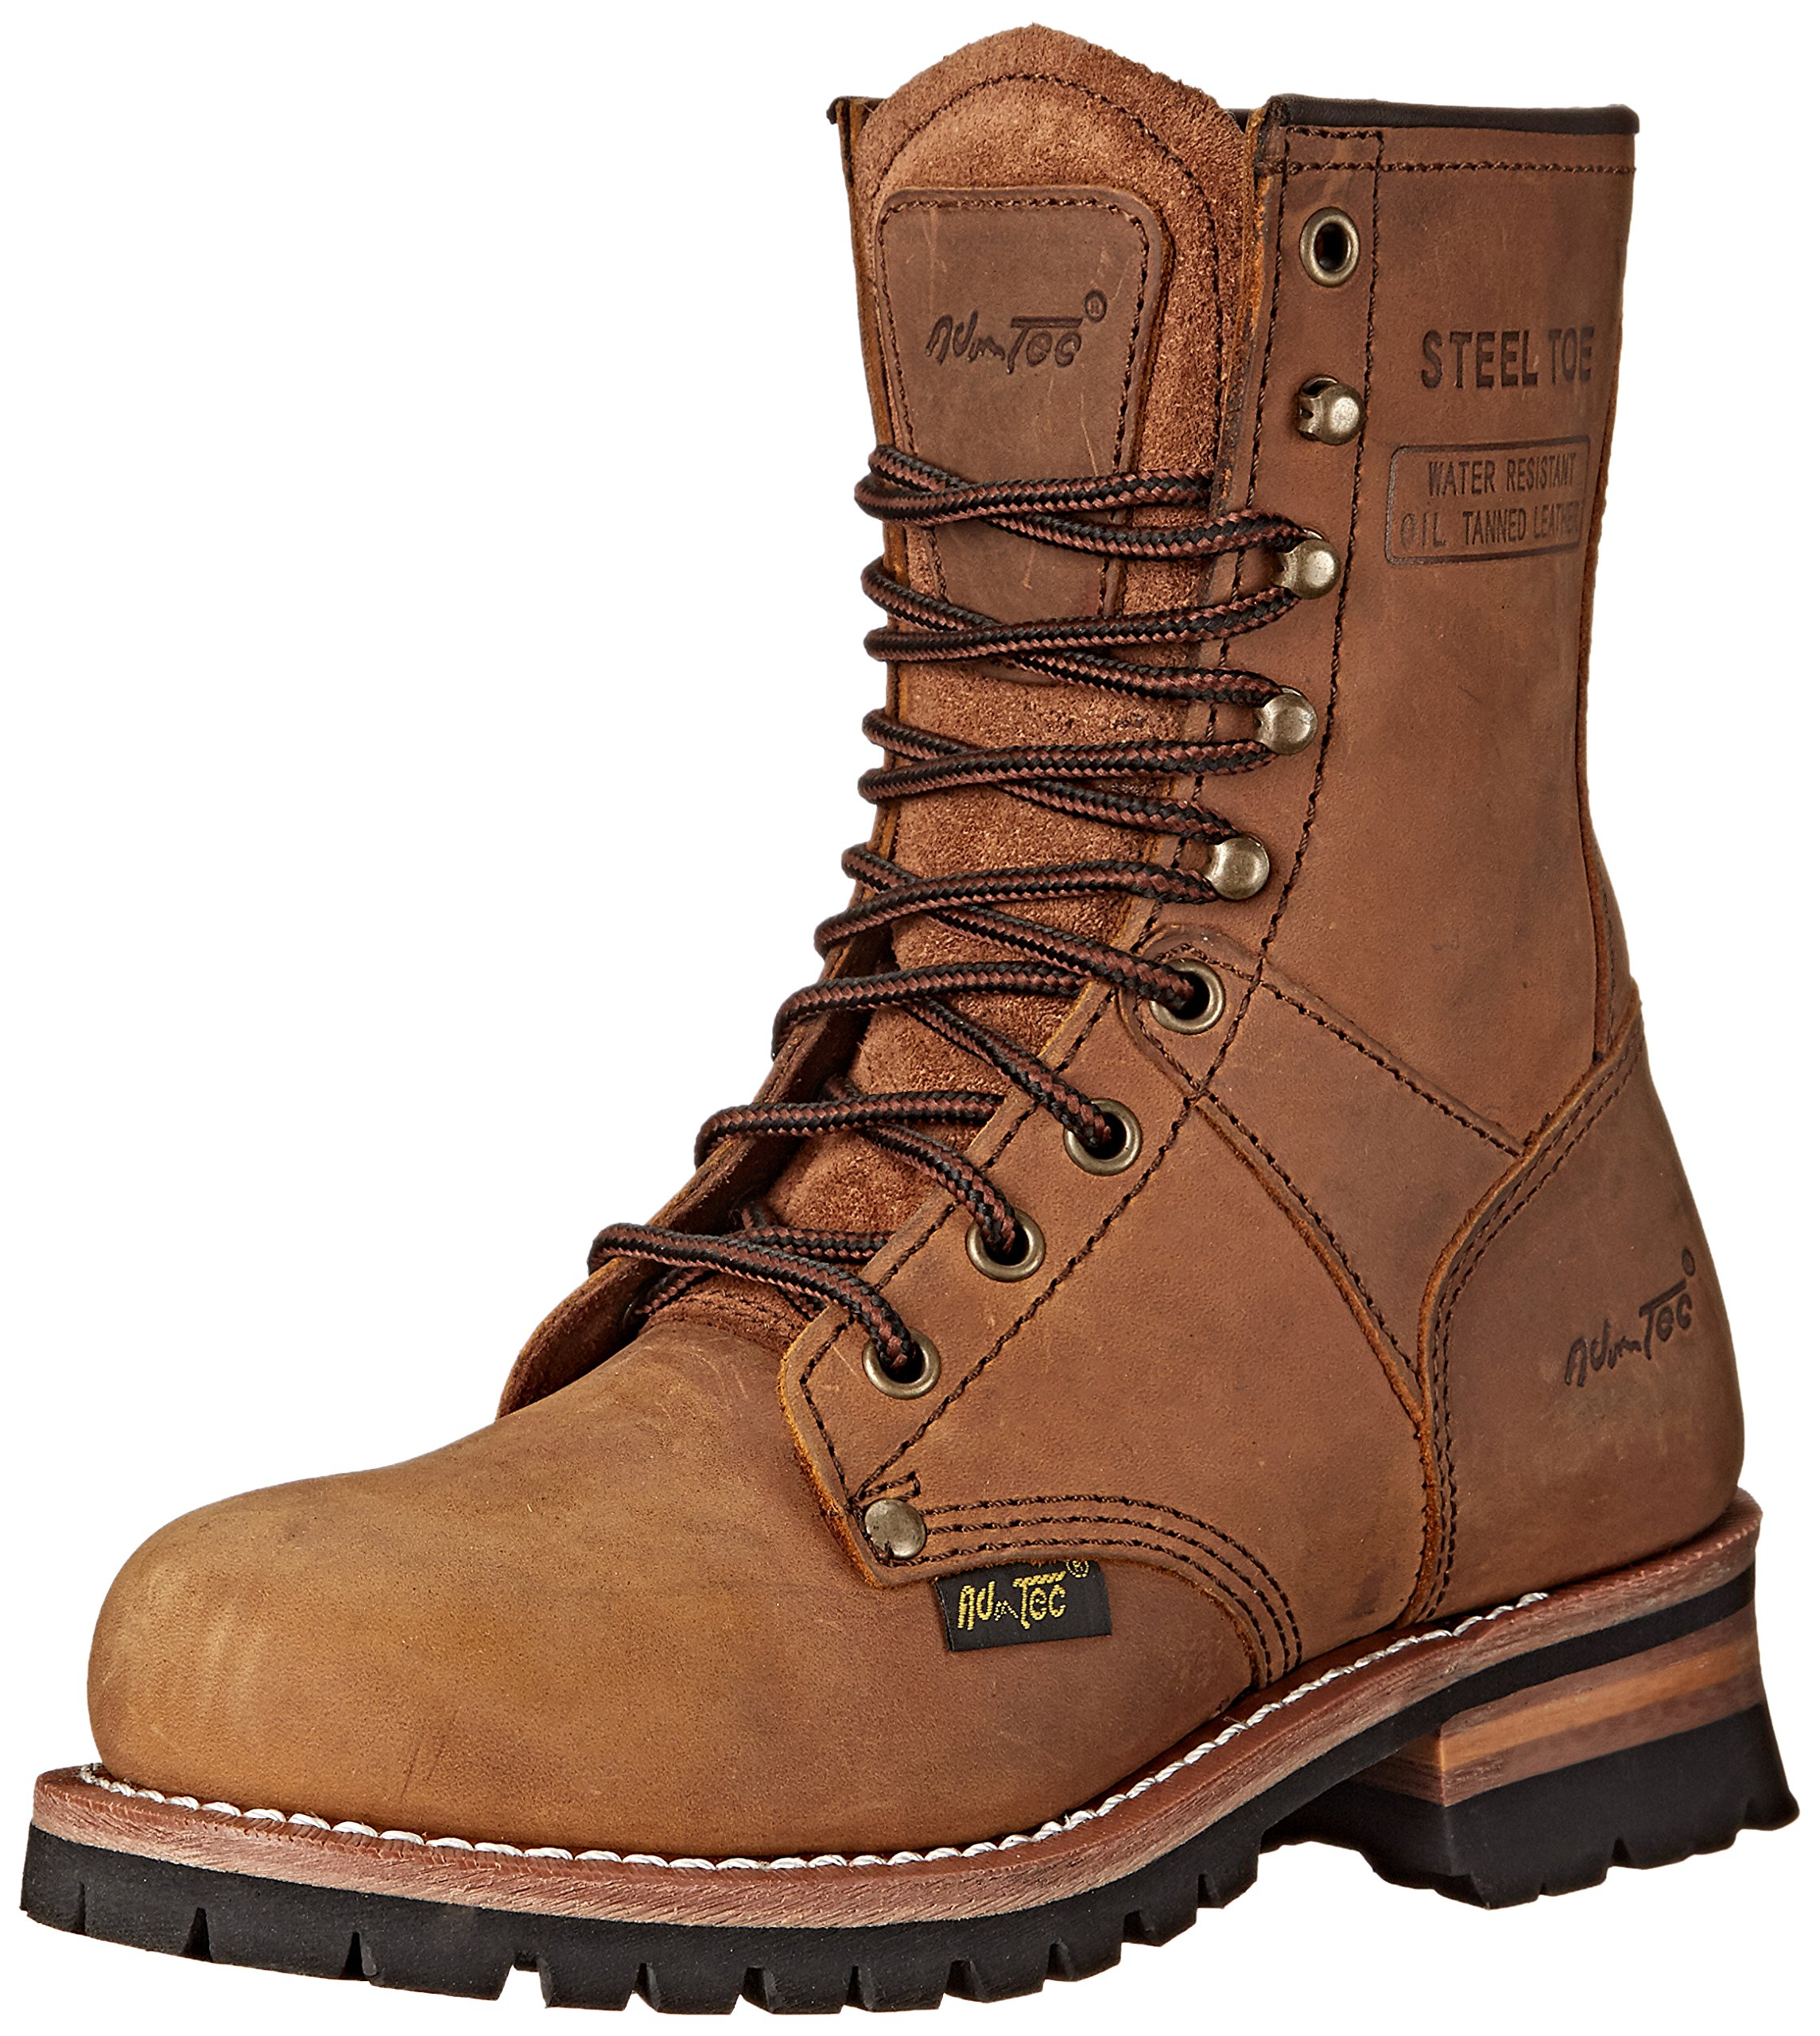 Adtec Women's Work Boots 9'' Steel Toe Logger, Brown, 7.5 M US